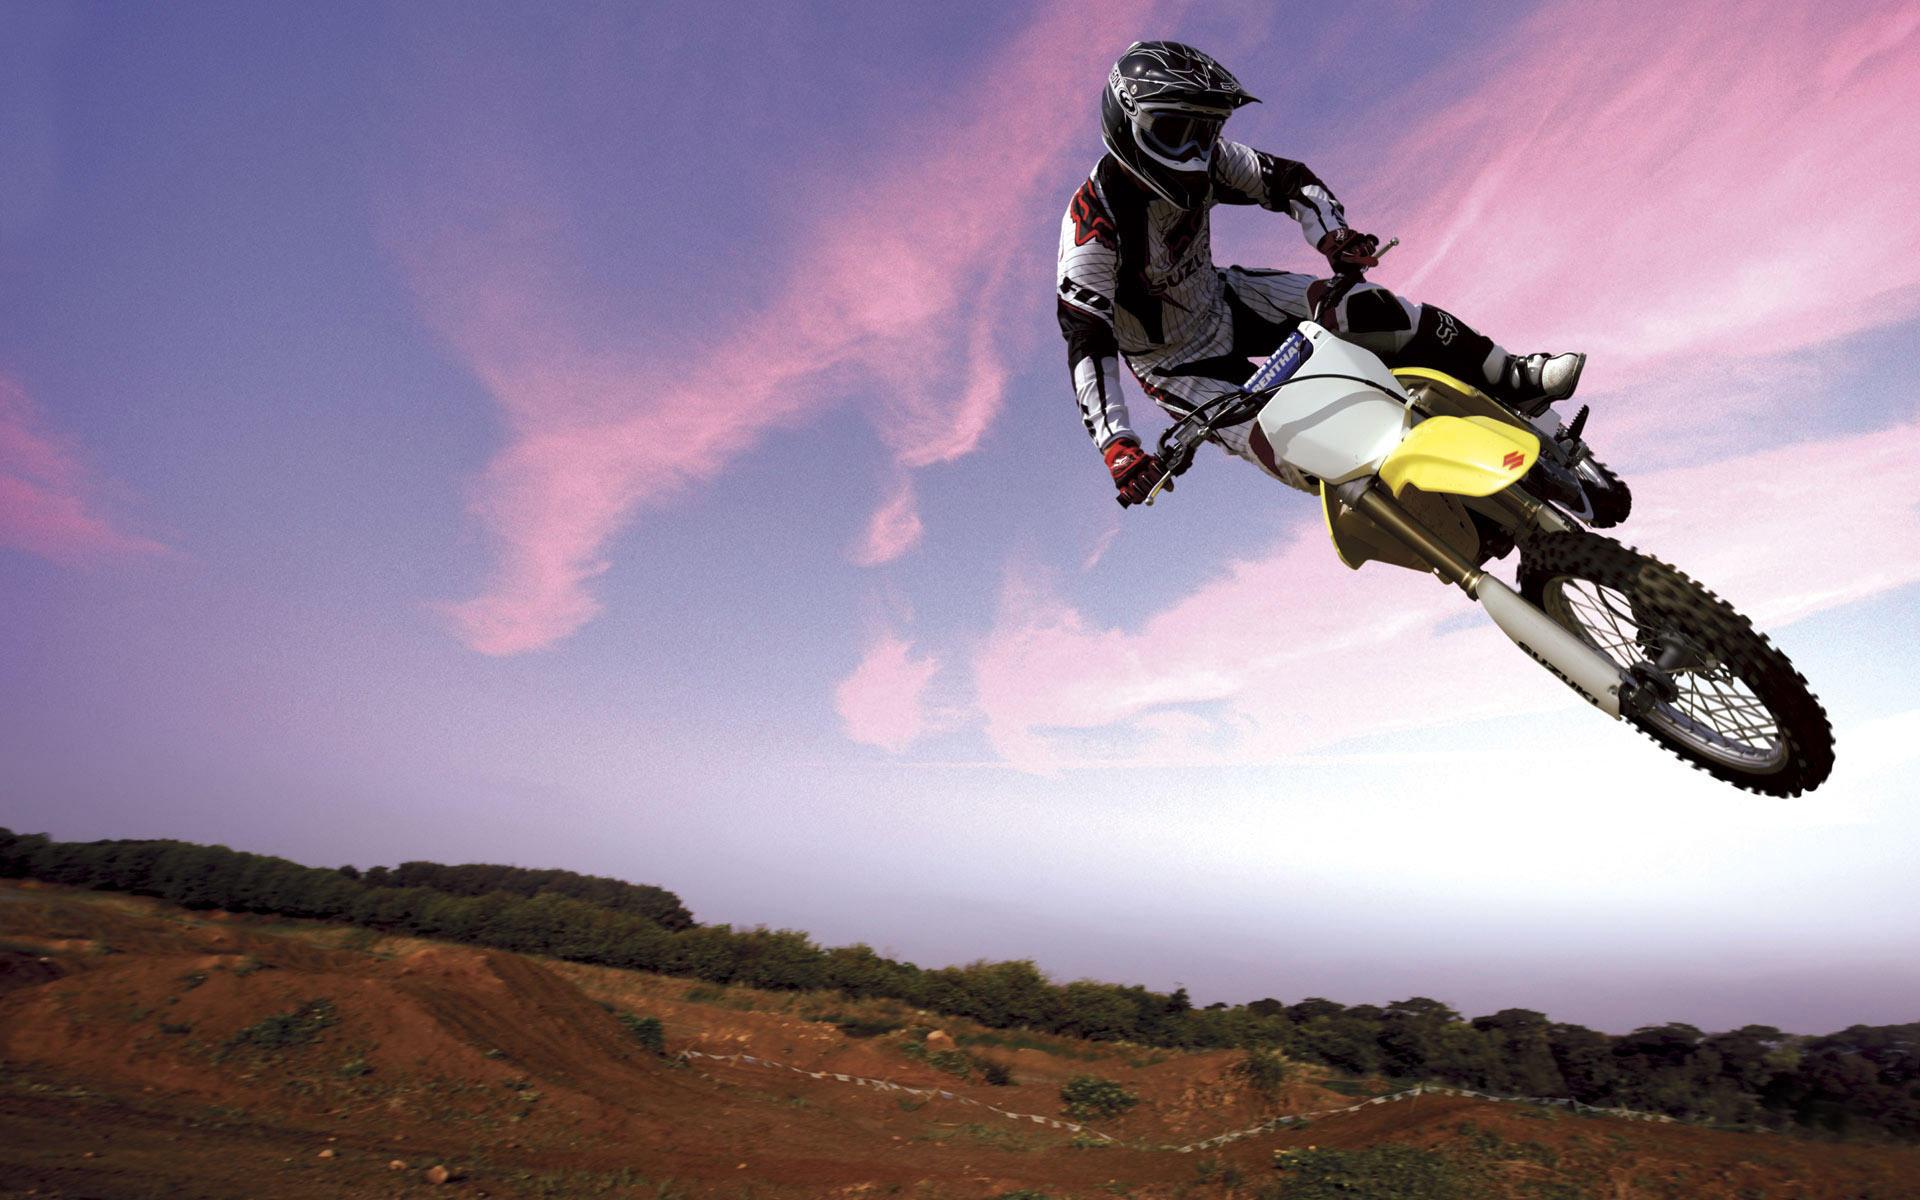 Motocross Bike in Sky 374.92 Kb